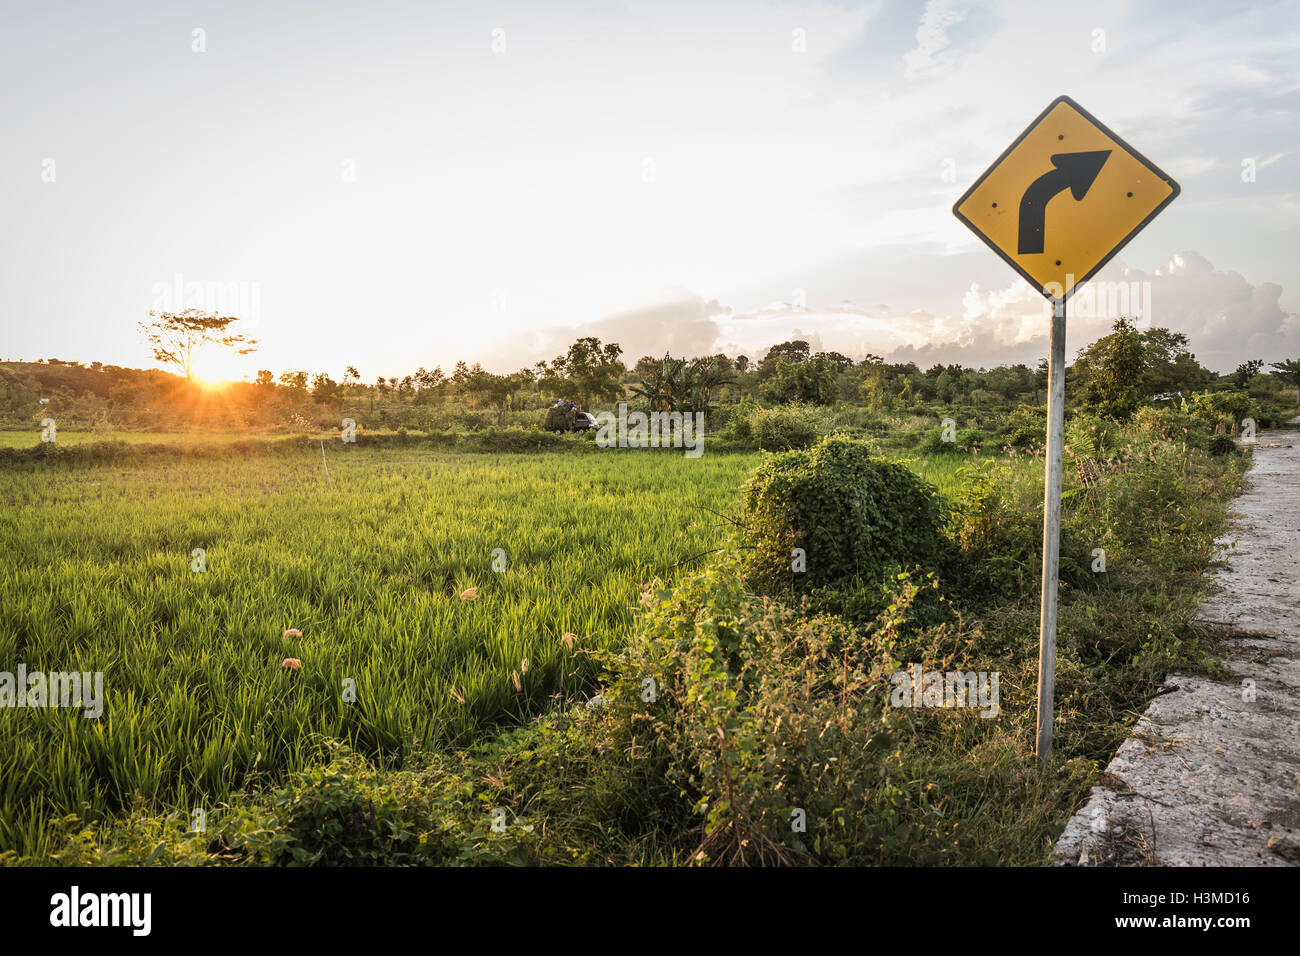 Yellow arrow sign and green field landscape at sunset, Lombok, Indonesia - Stock Image